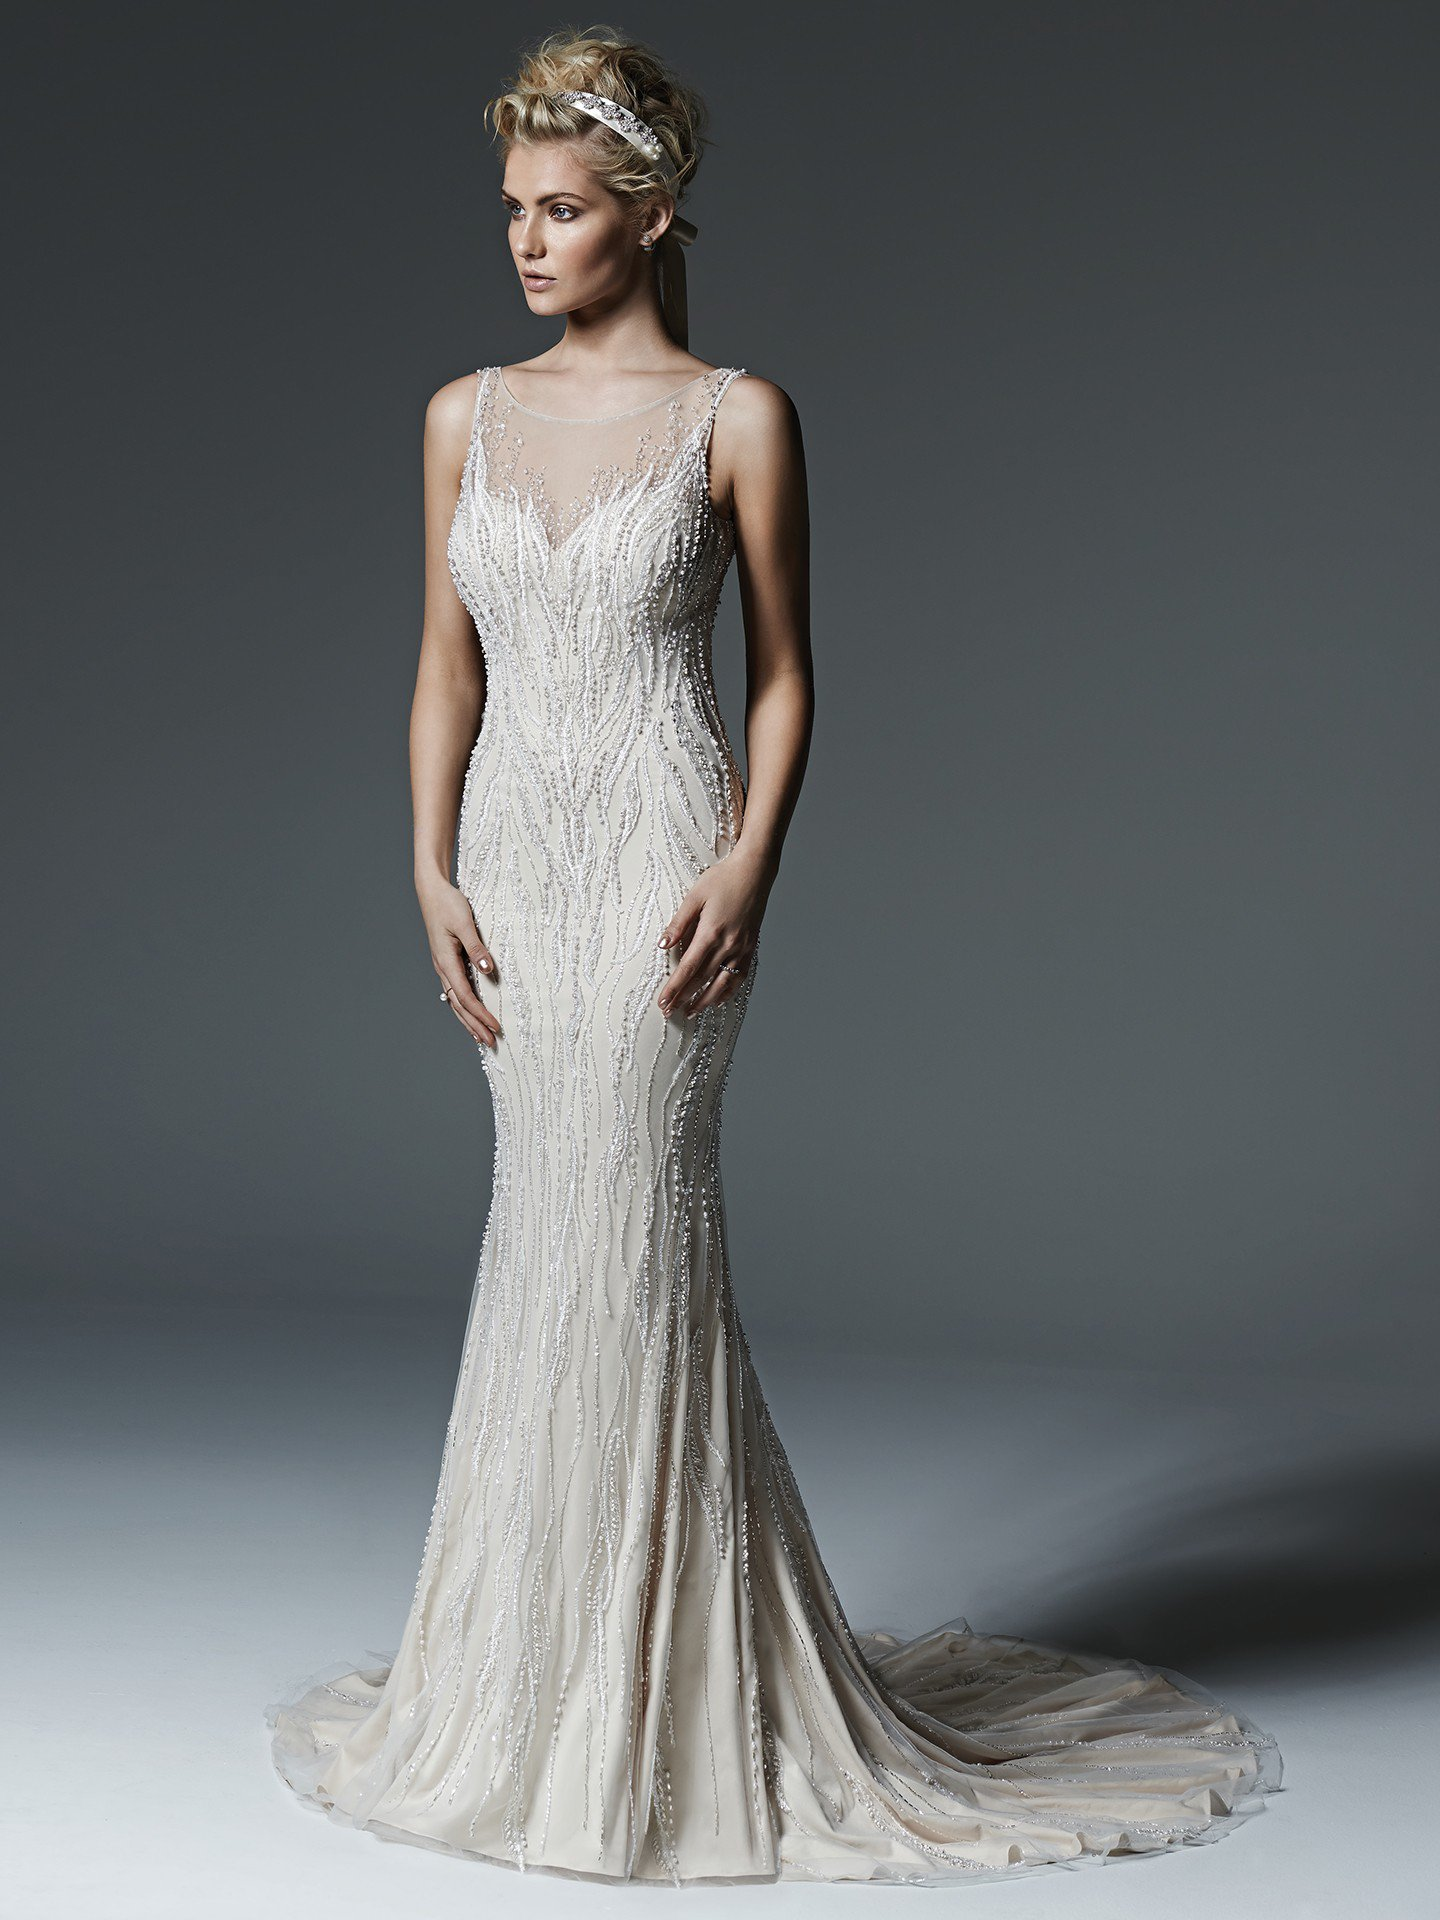 Sottero & Midgley <br> Florinda <br> Size 14 Was £1,600 Now £750